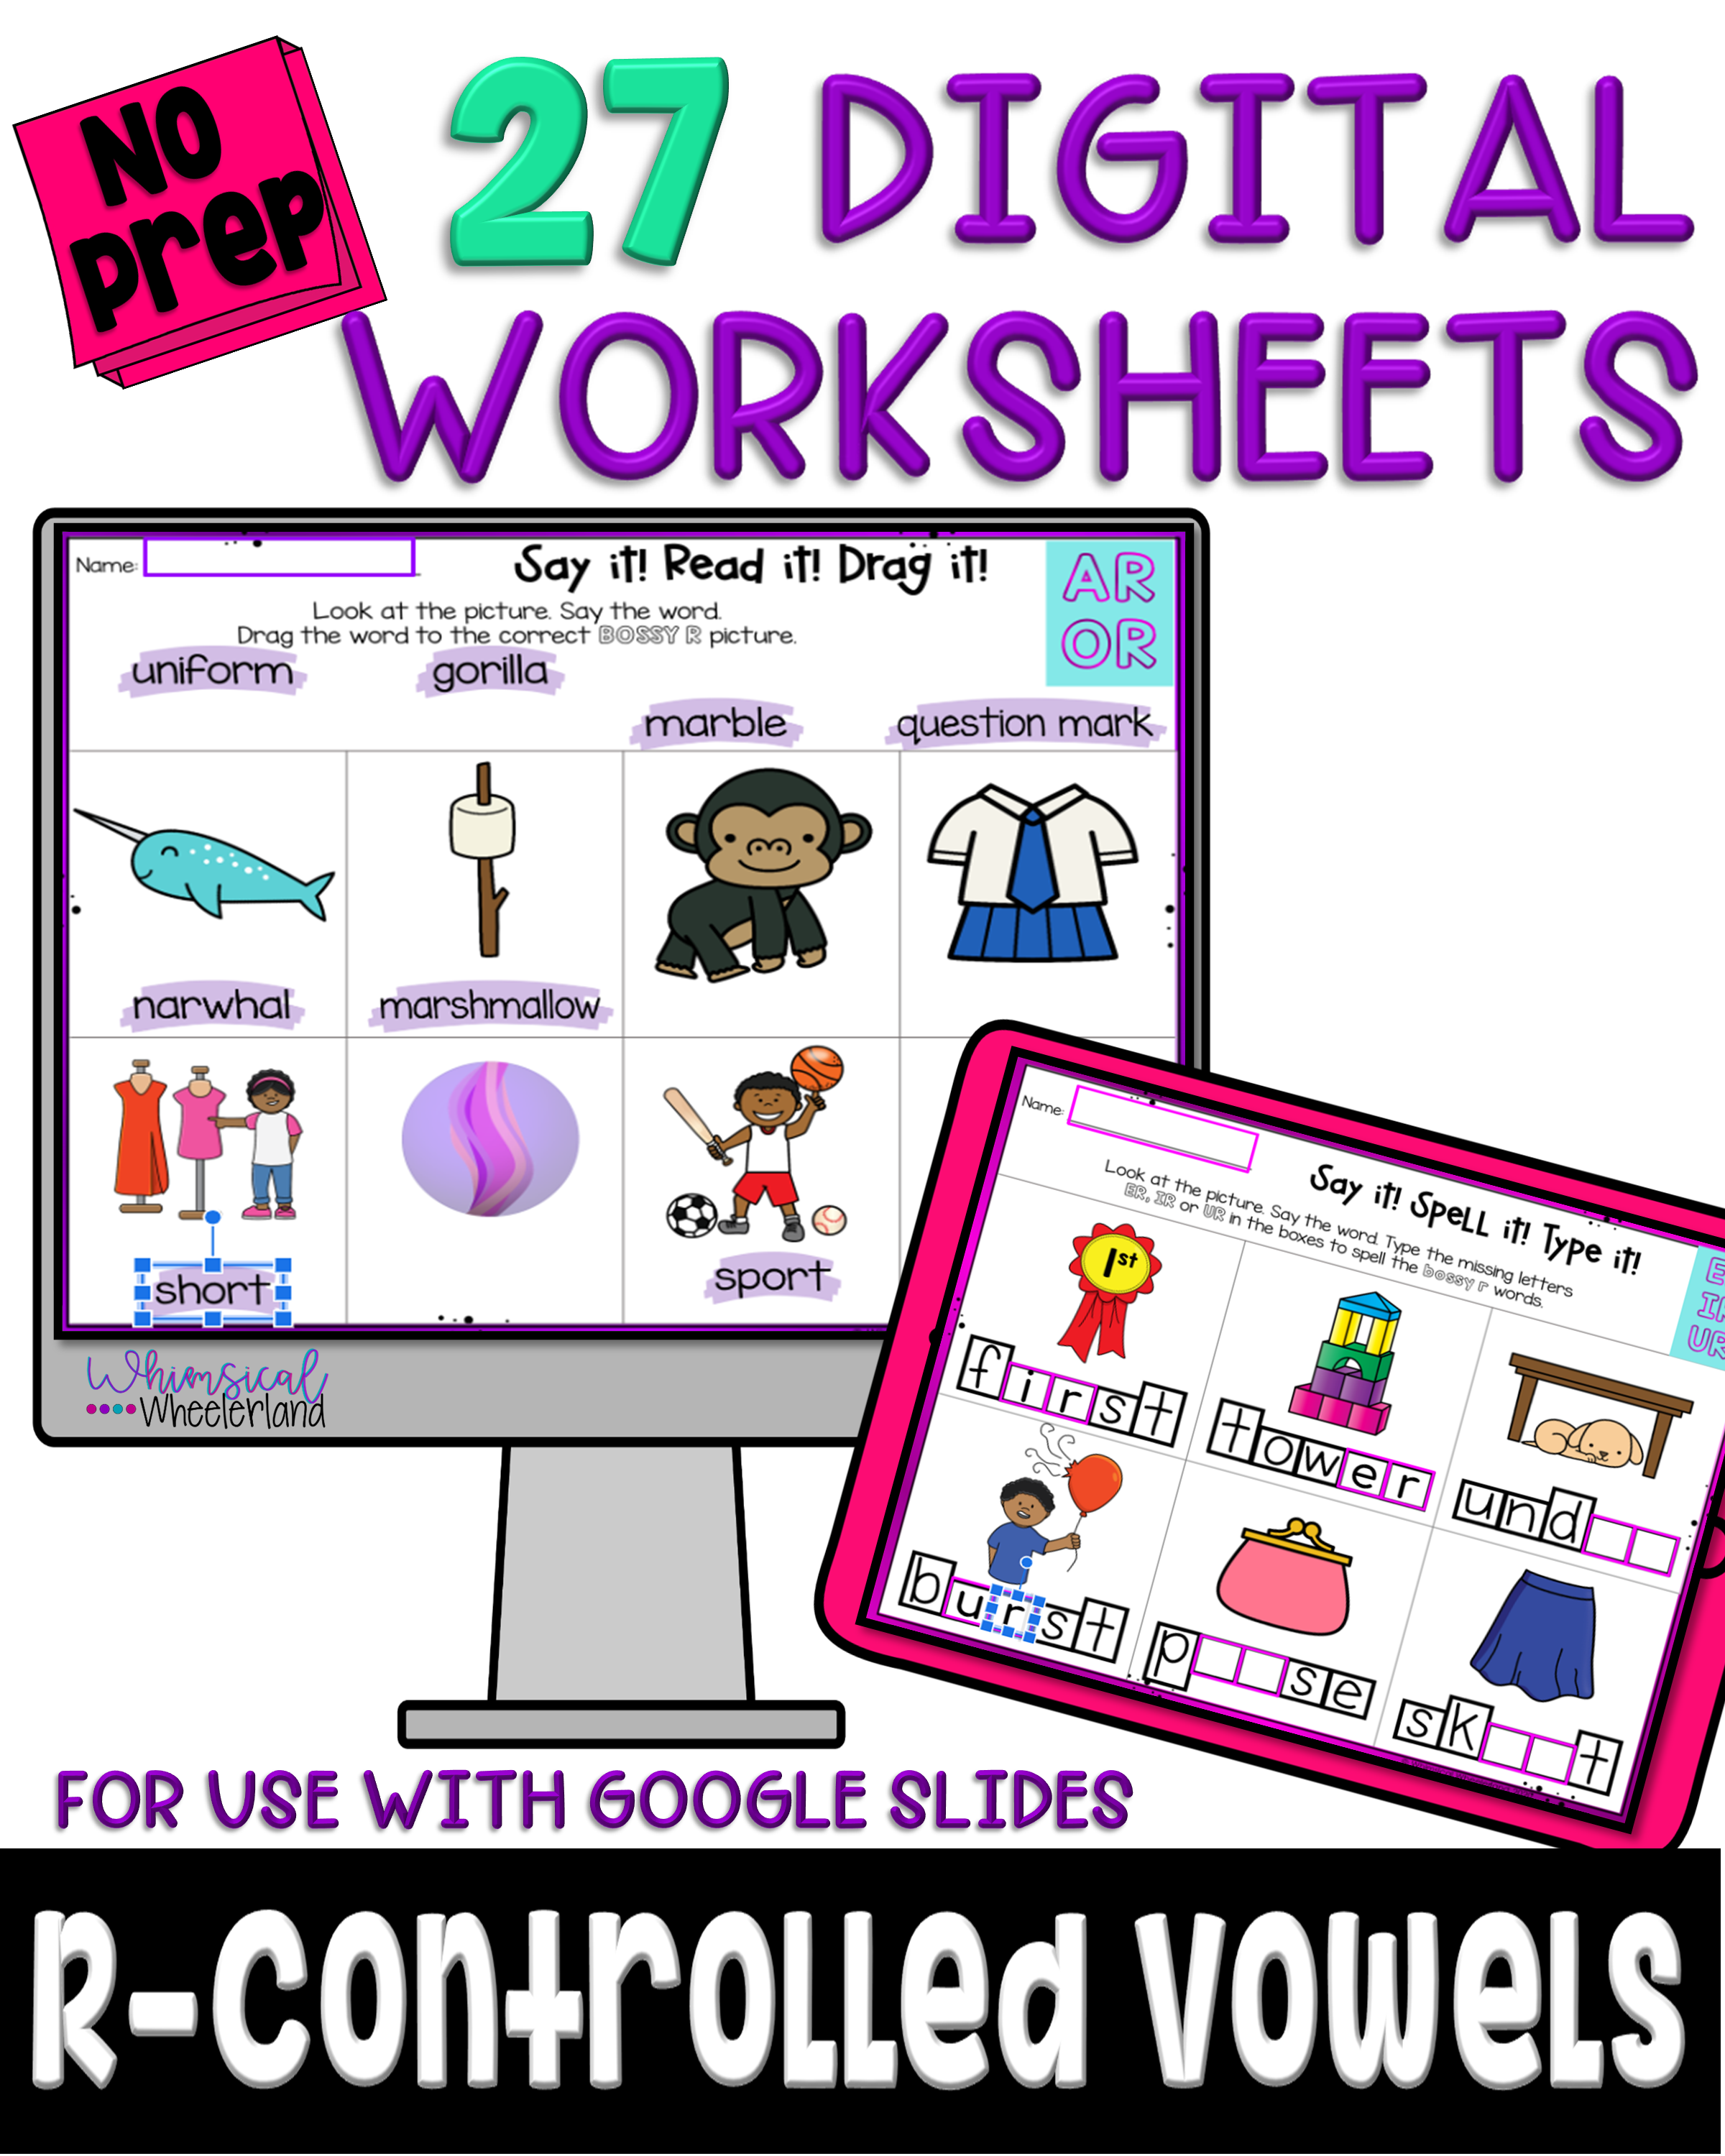 R Controlled Vowel Worksheets   NO PREP DIGITAL Bossy R Activities for  Google™   Learning phonics [ 3000 x 2400 Pixel ]